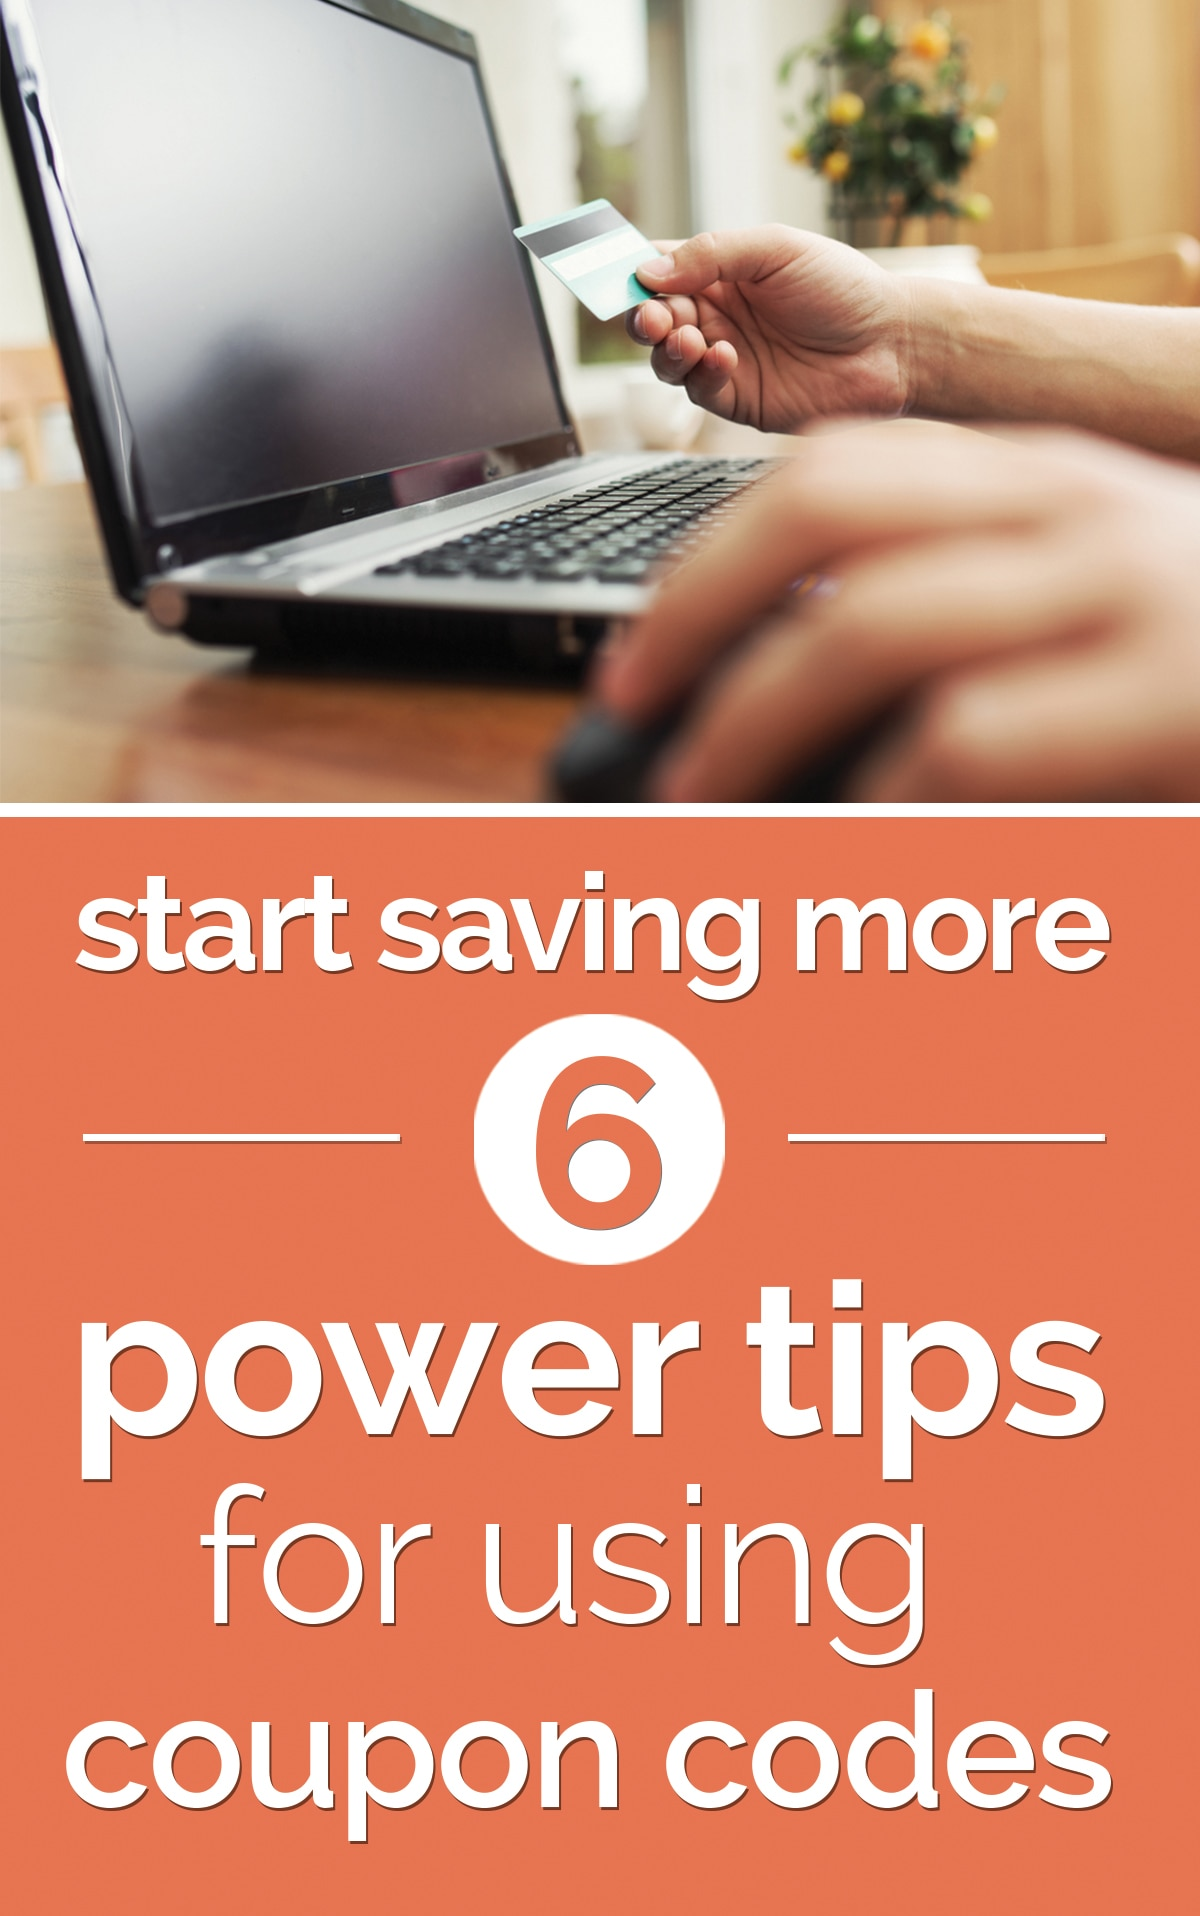 Start Saving More: 6 Power Tips for Using Coupon Codes